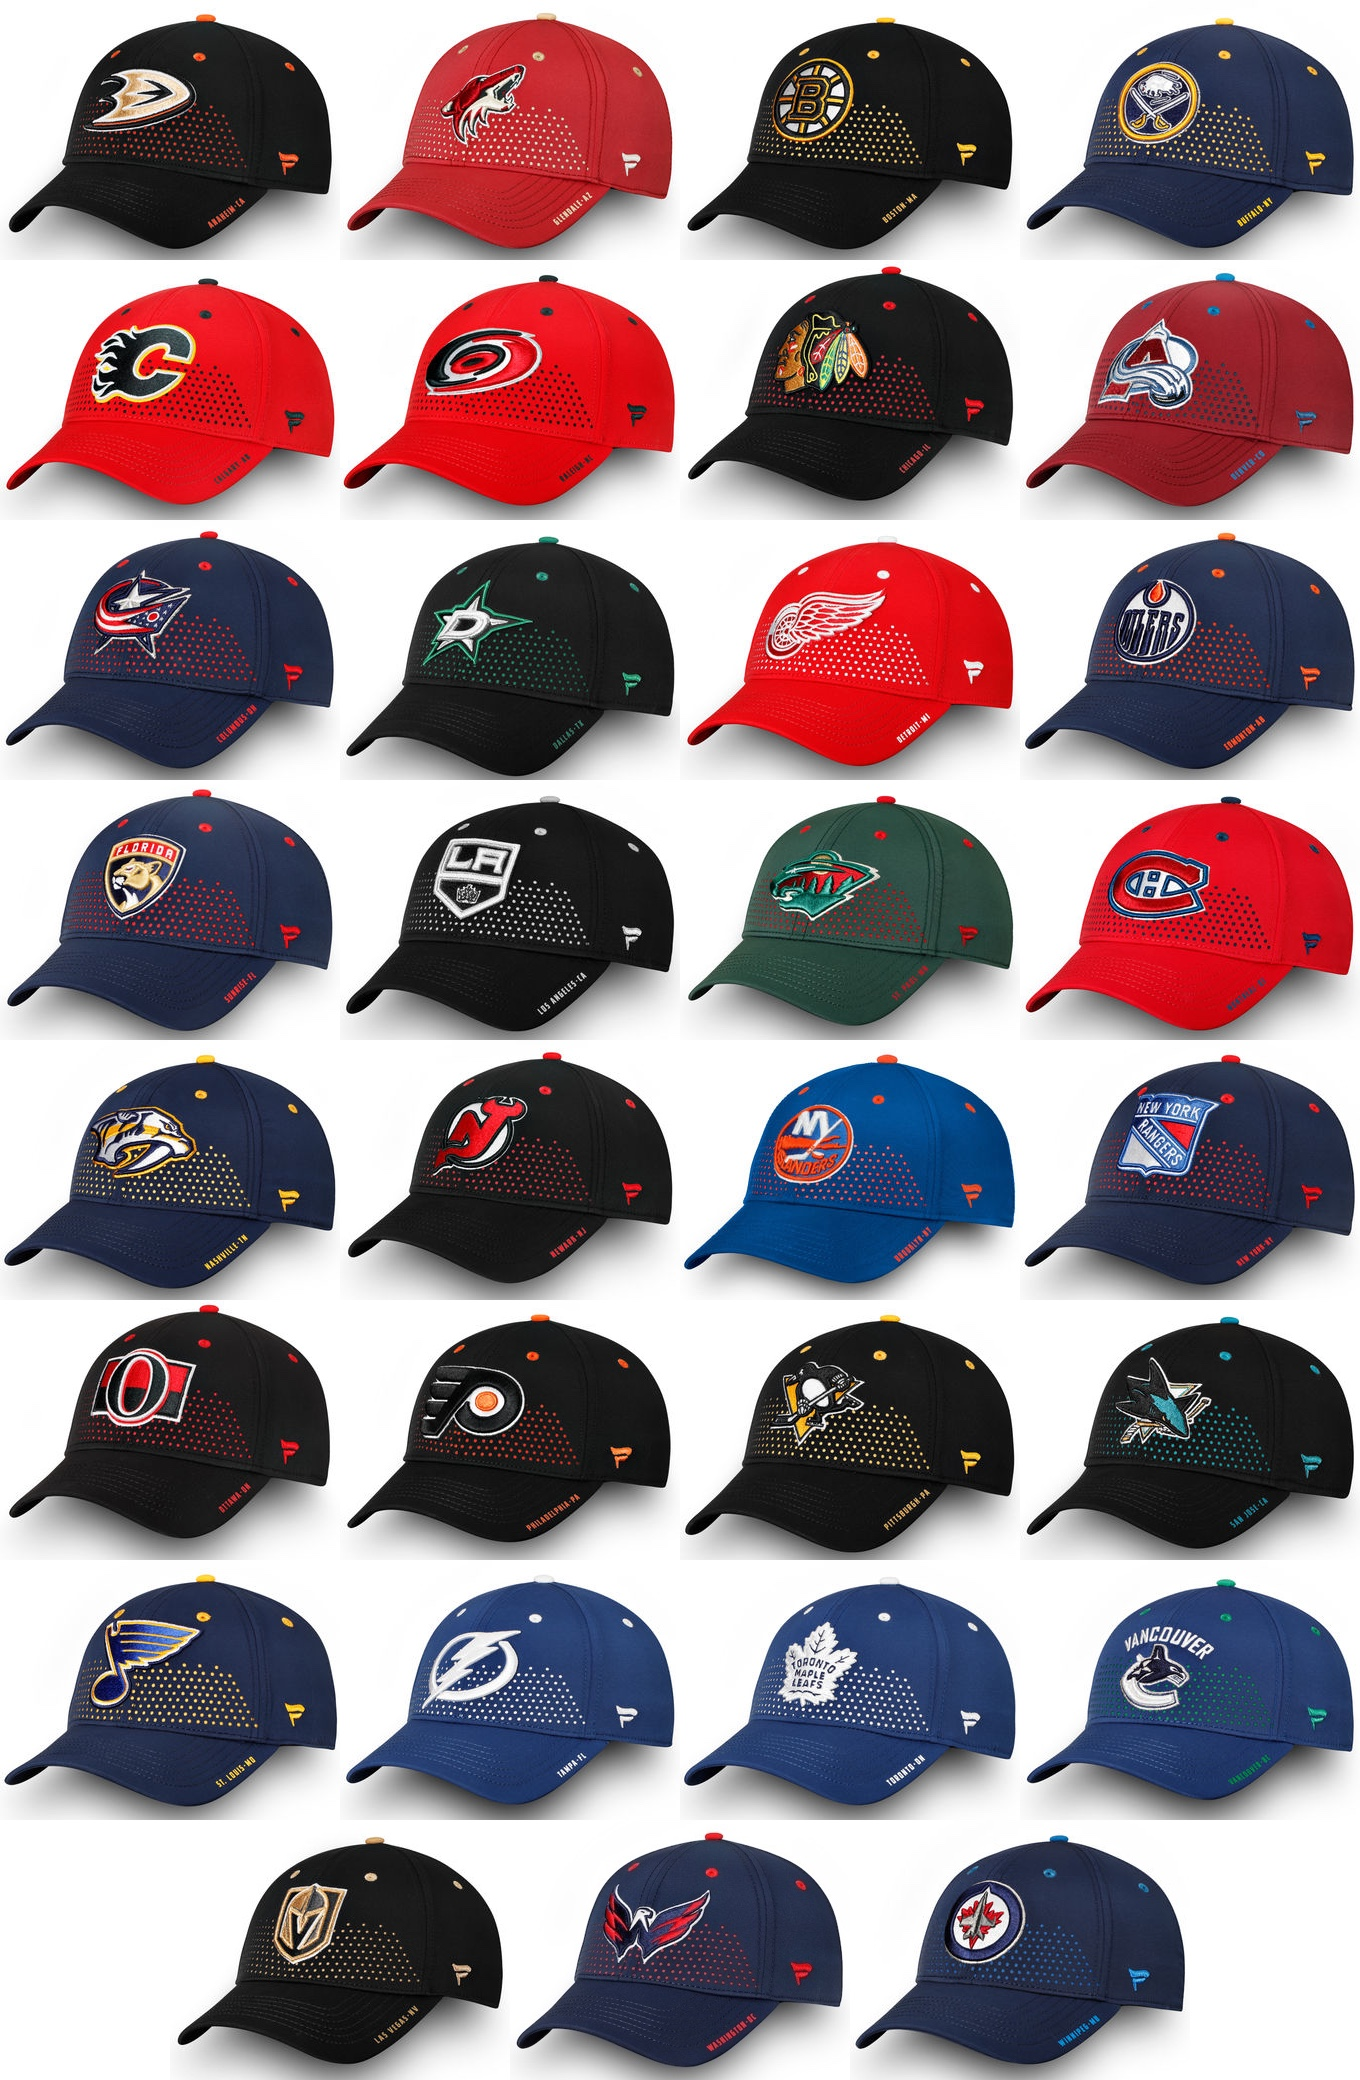 huge discount fff02 ced60 Do the 2018 NHL Draft hats preview any new jerseys ...